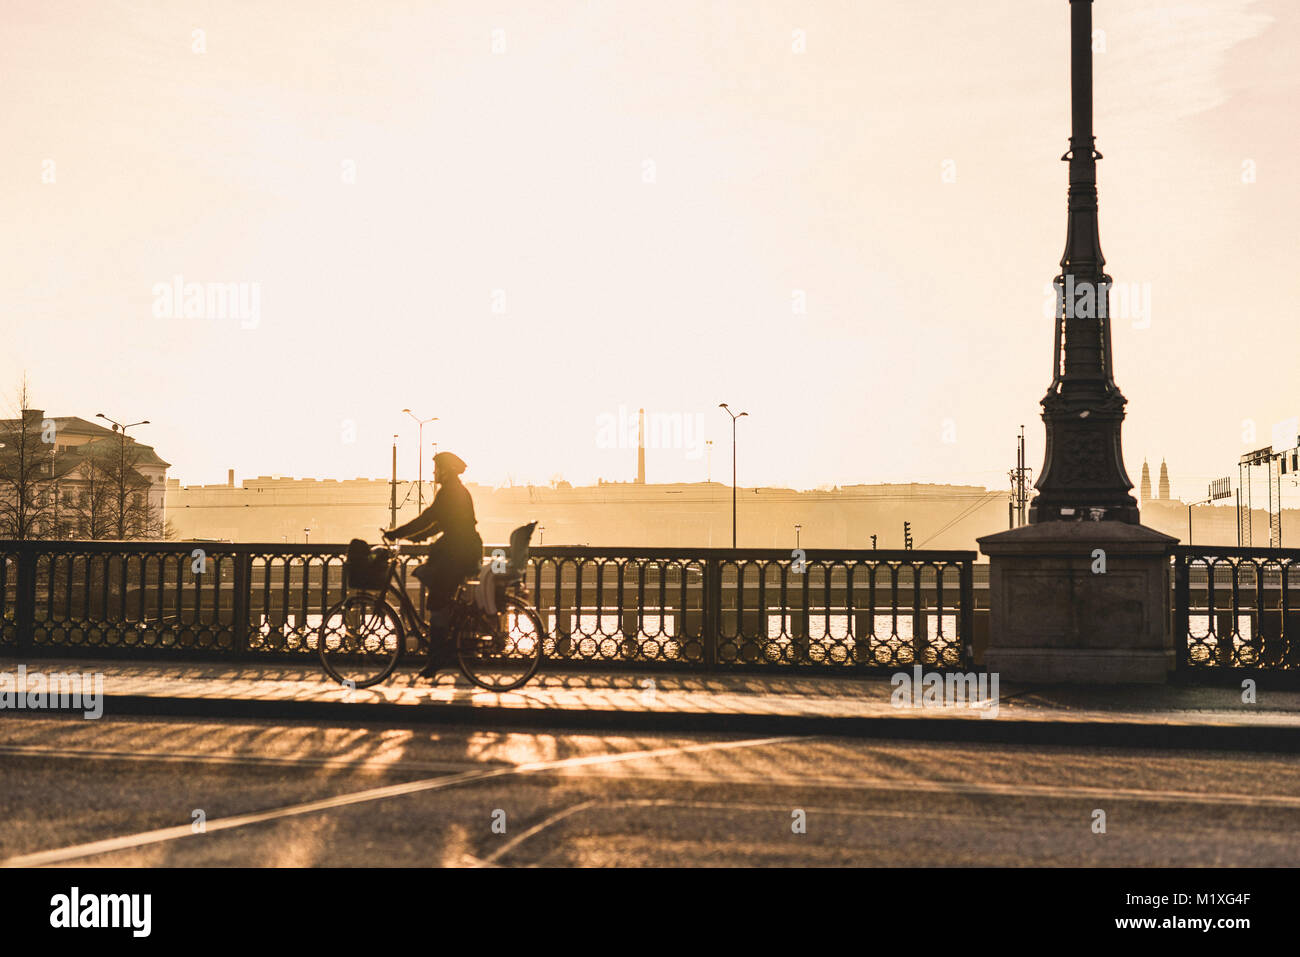 Woman bicycling along bridge in Stockholm, Sweden - Stock Image